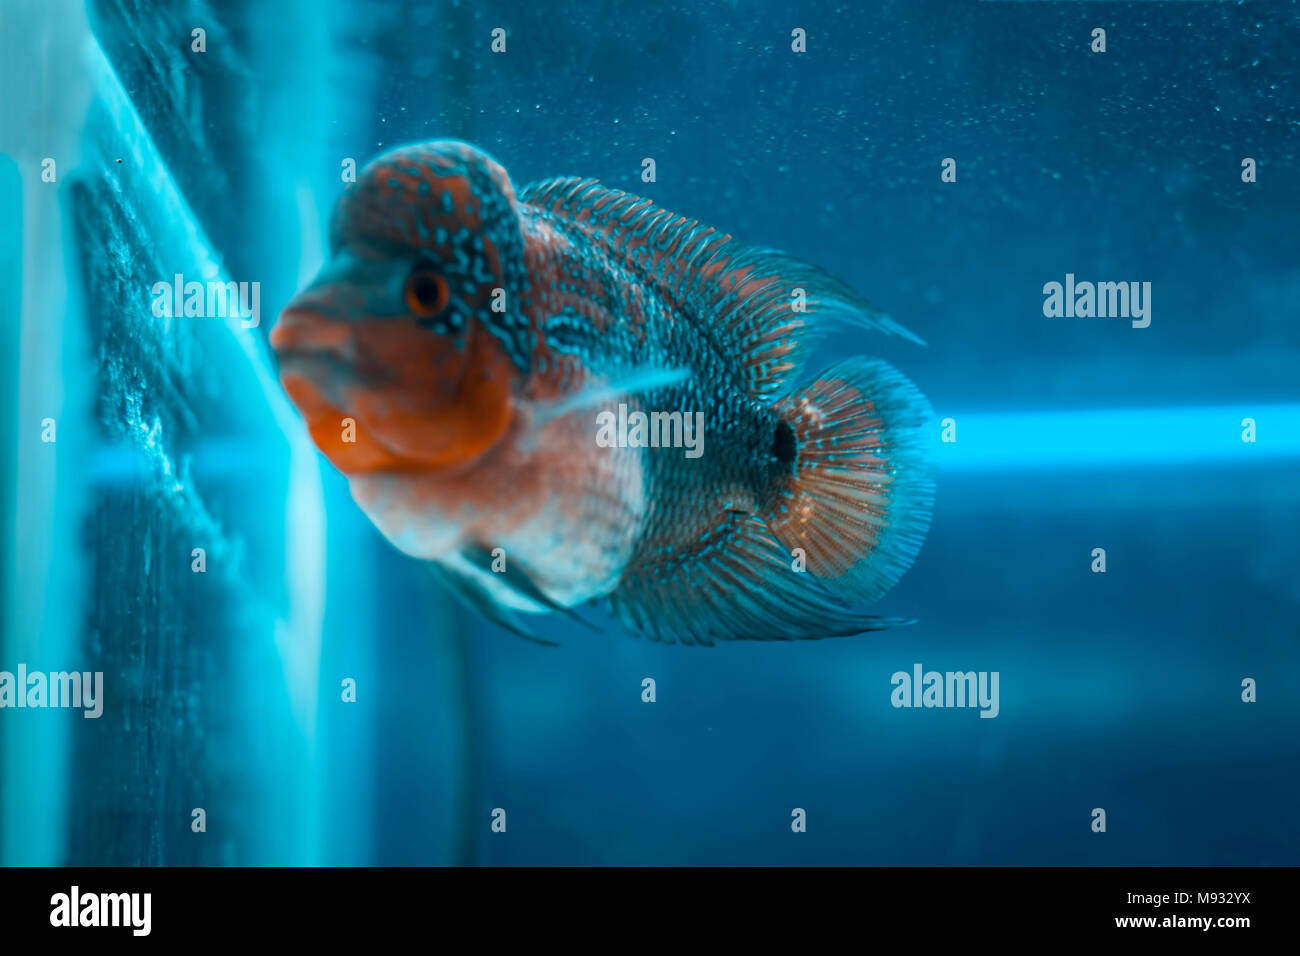 Close up of different types of fishes in a aquarium. Stock Photo